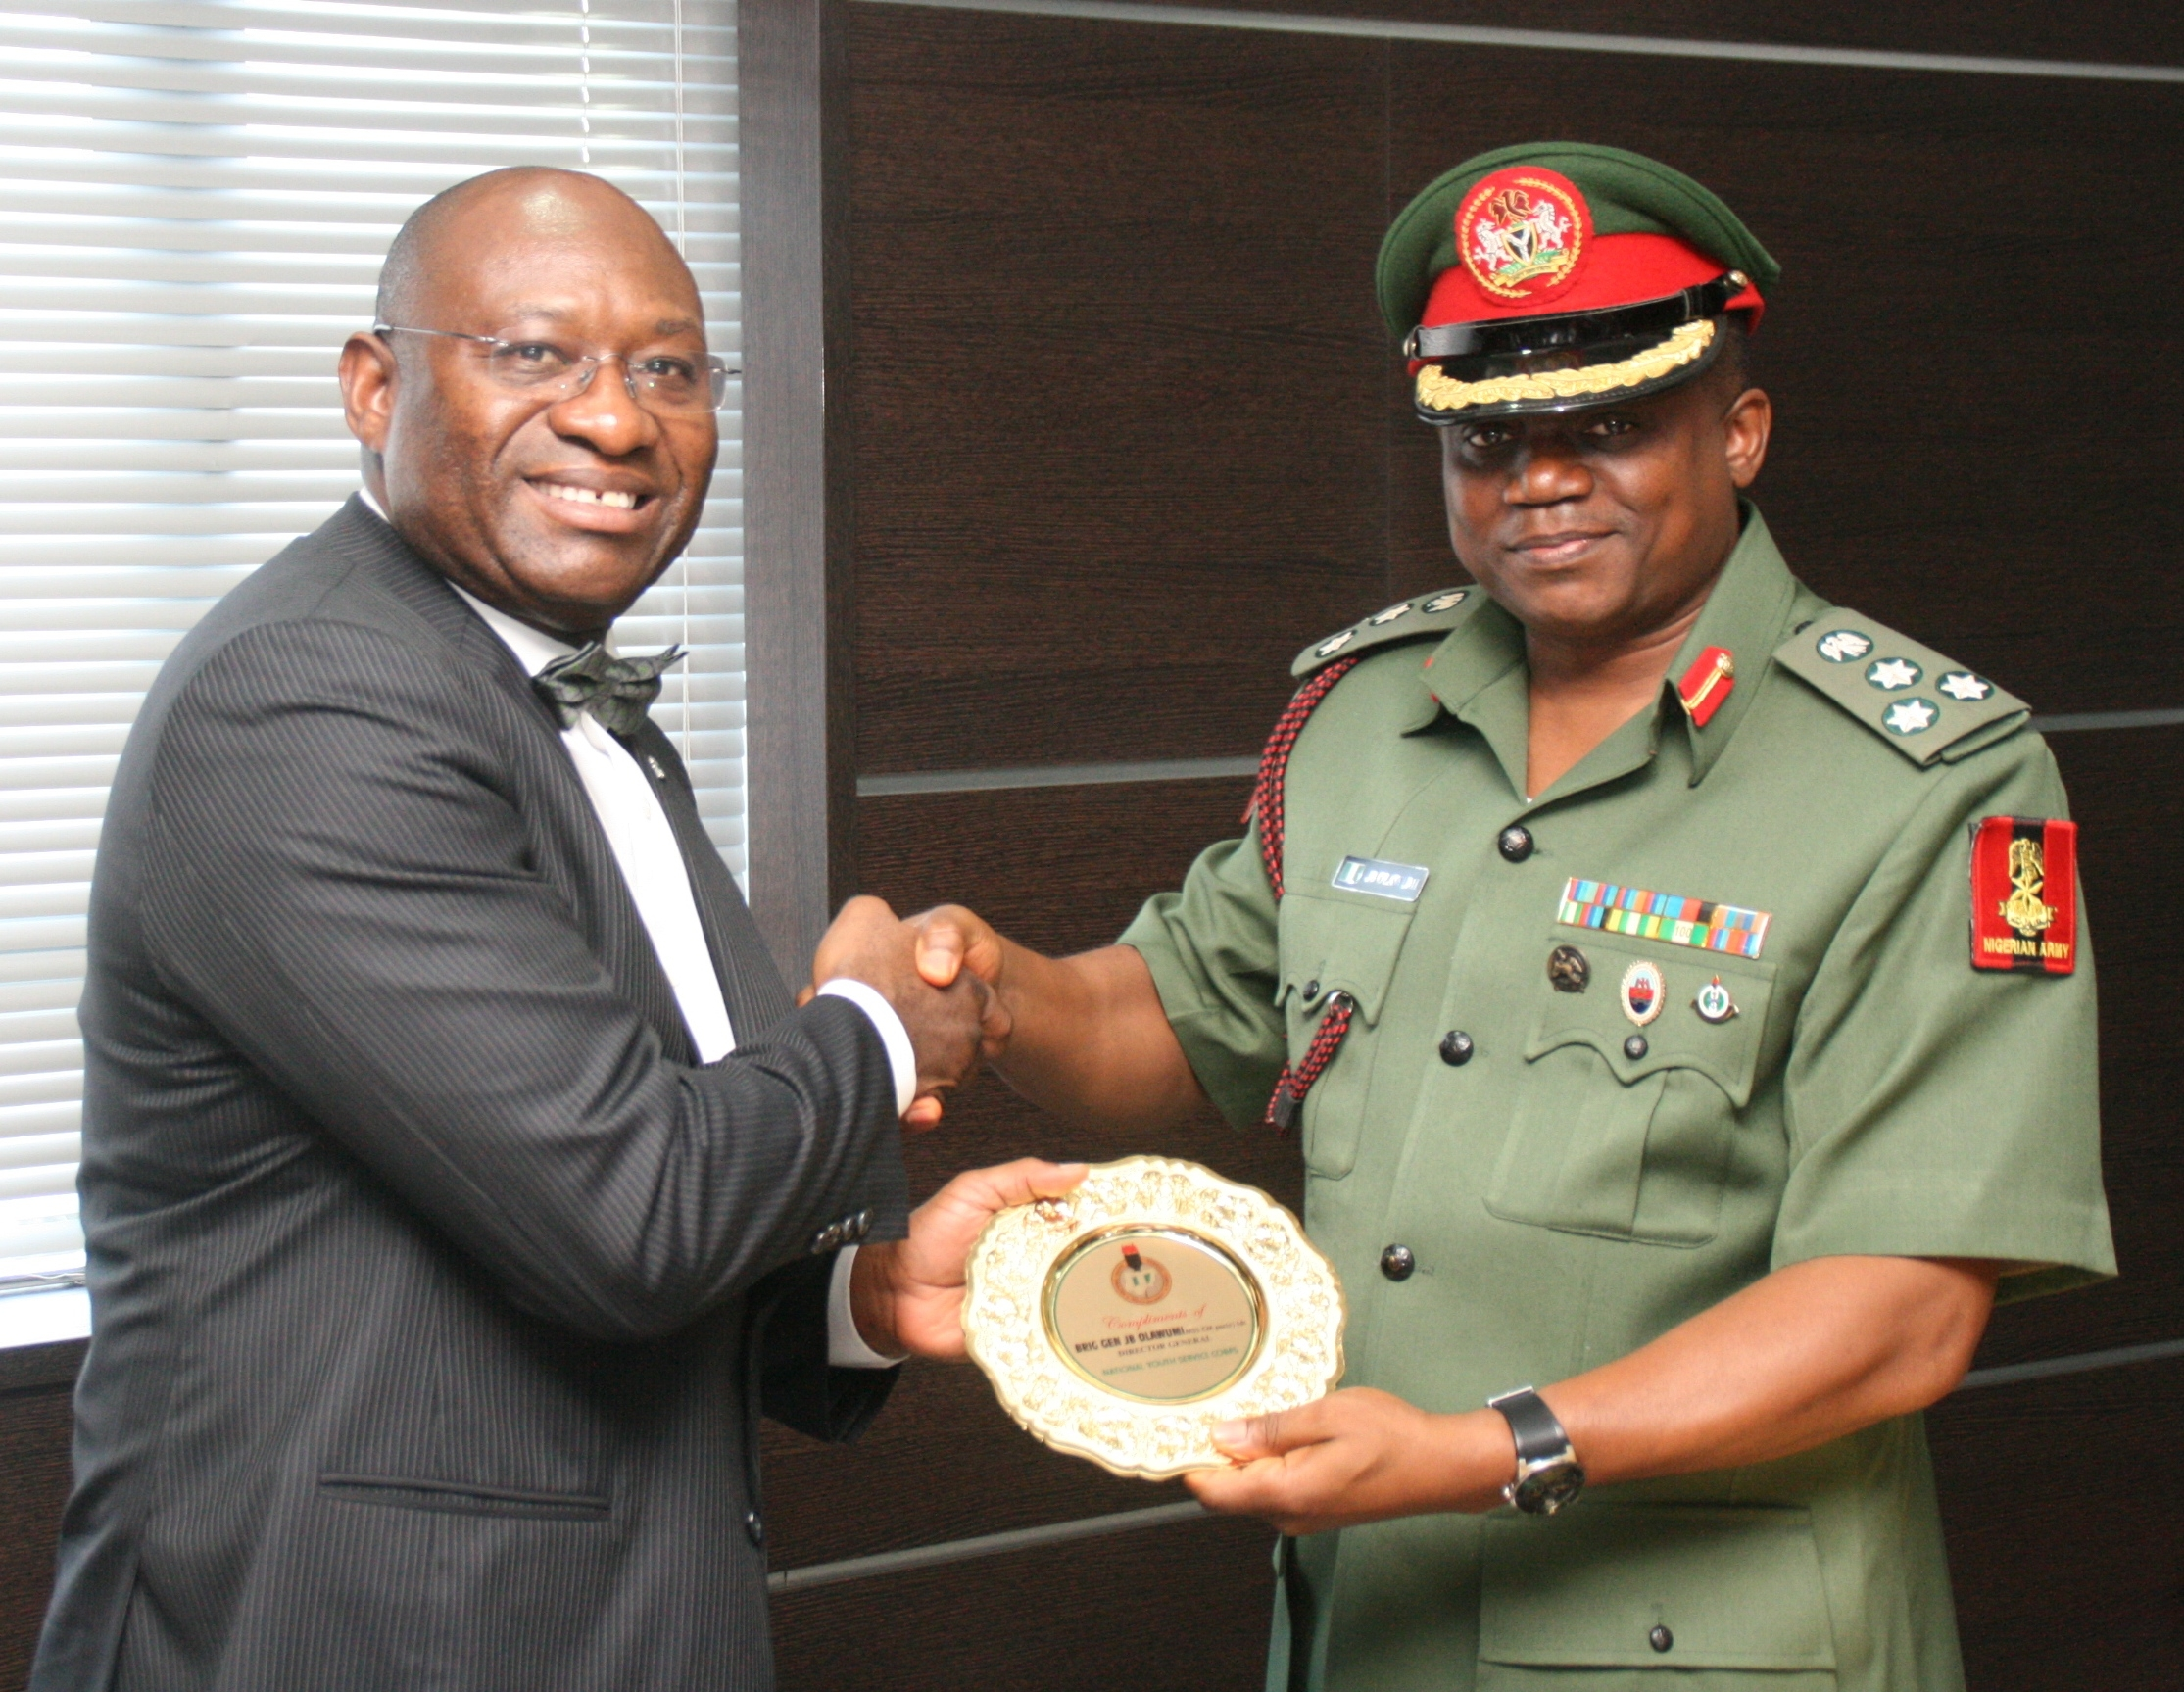 (L-R): Managing Director, Heritage Banking Company Limited, Mr. Ifie Sekibo receiving a commendation award plaque from the Director-General, National Youth Service Corps, Brigadier General Johnson Olawunmi during a courtesy visit by the NYSC Management team to the Bank's head-office on Tuesday